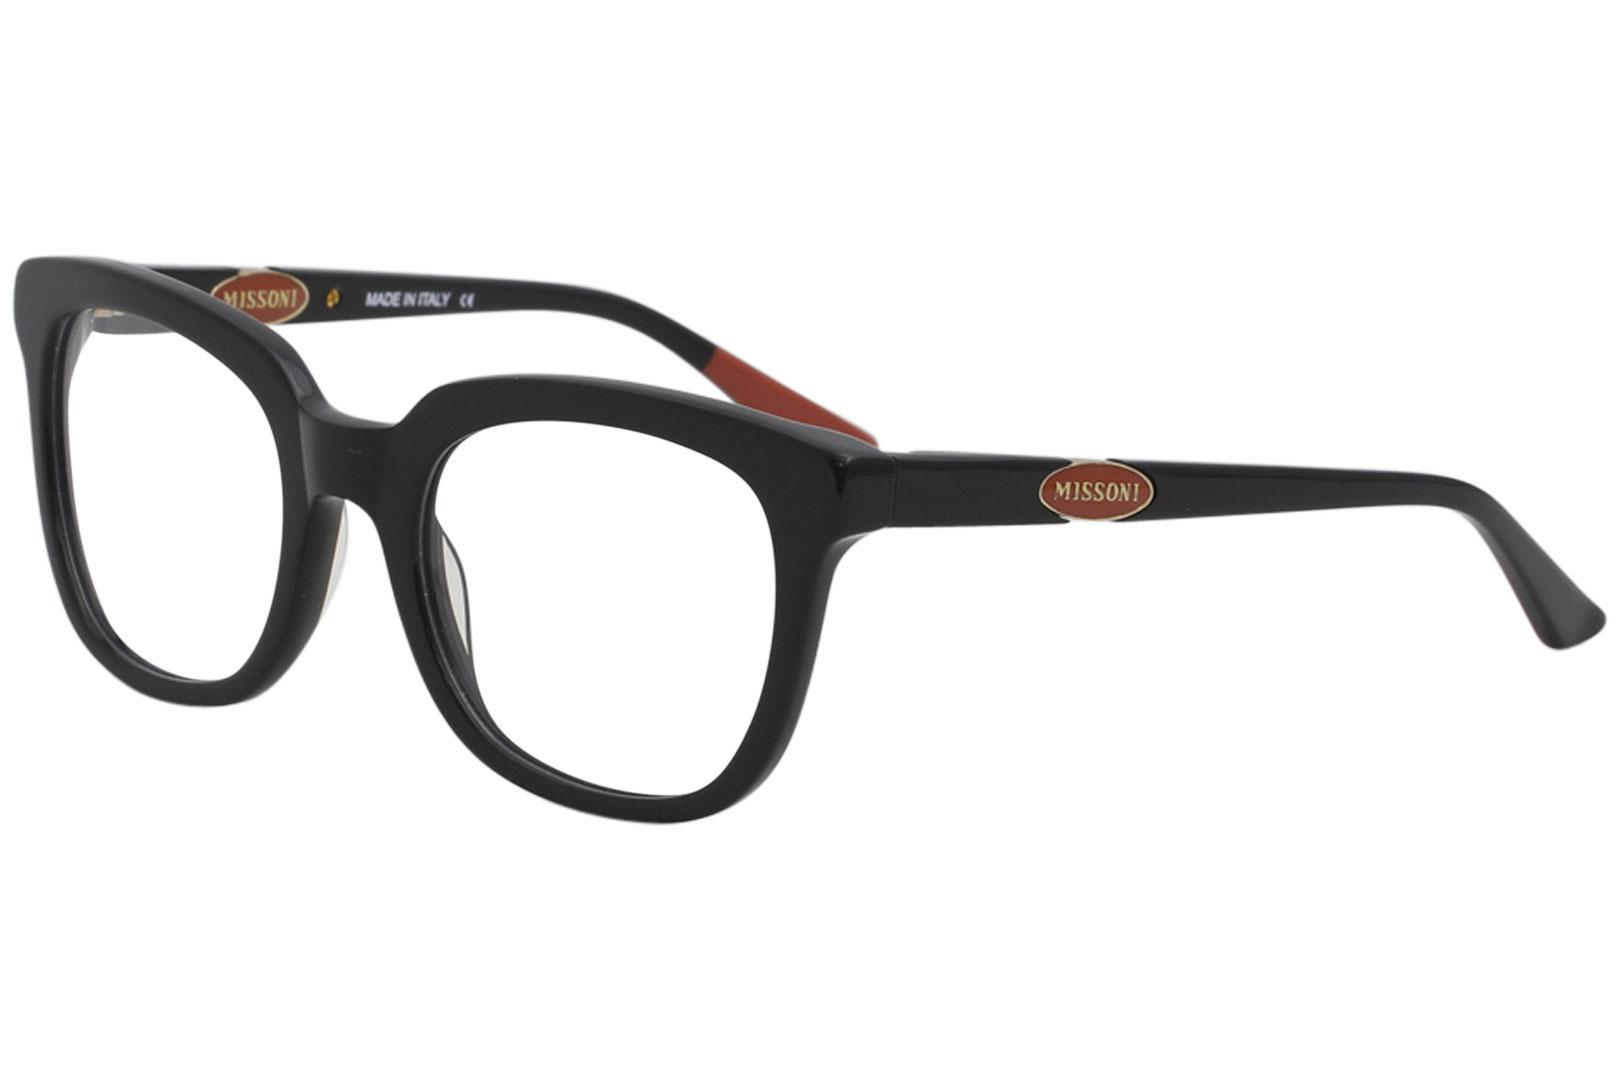 Image of Missoni Women's Eyeglasses MI308V MI/308/V Full Rim Optical Frame - Black - Lens 53 Bridge 21 Temple 135mm